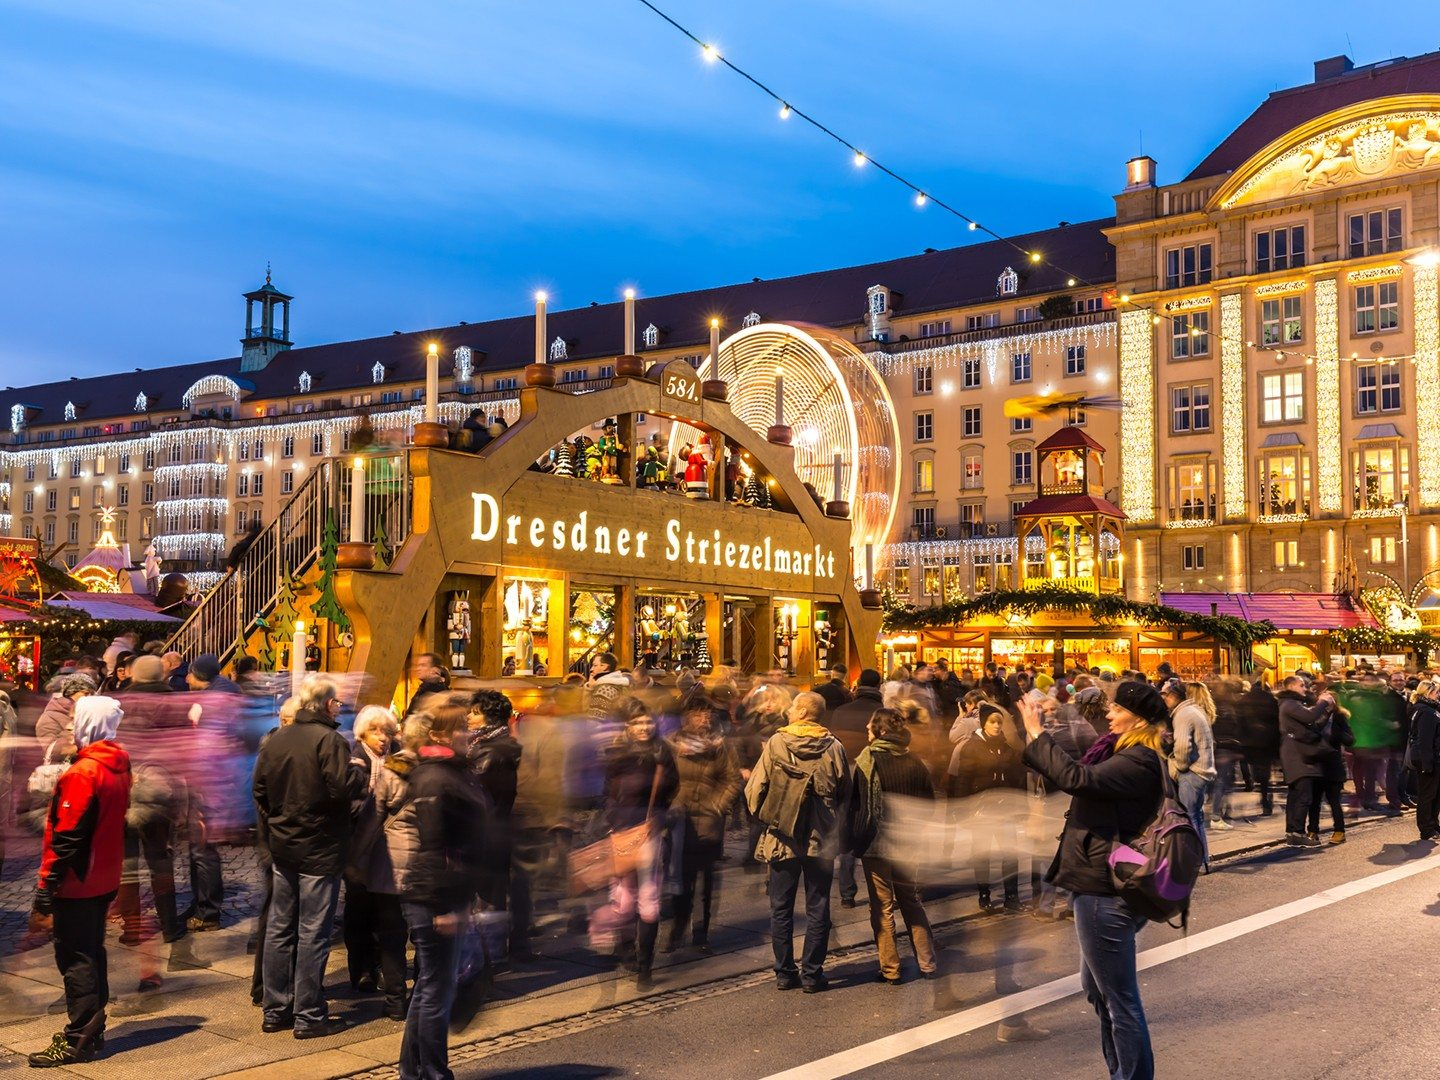 In Photos: The Best 10 Christmas Markets Around The World